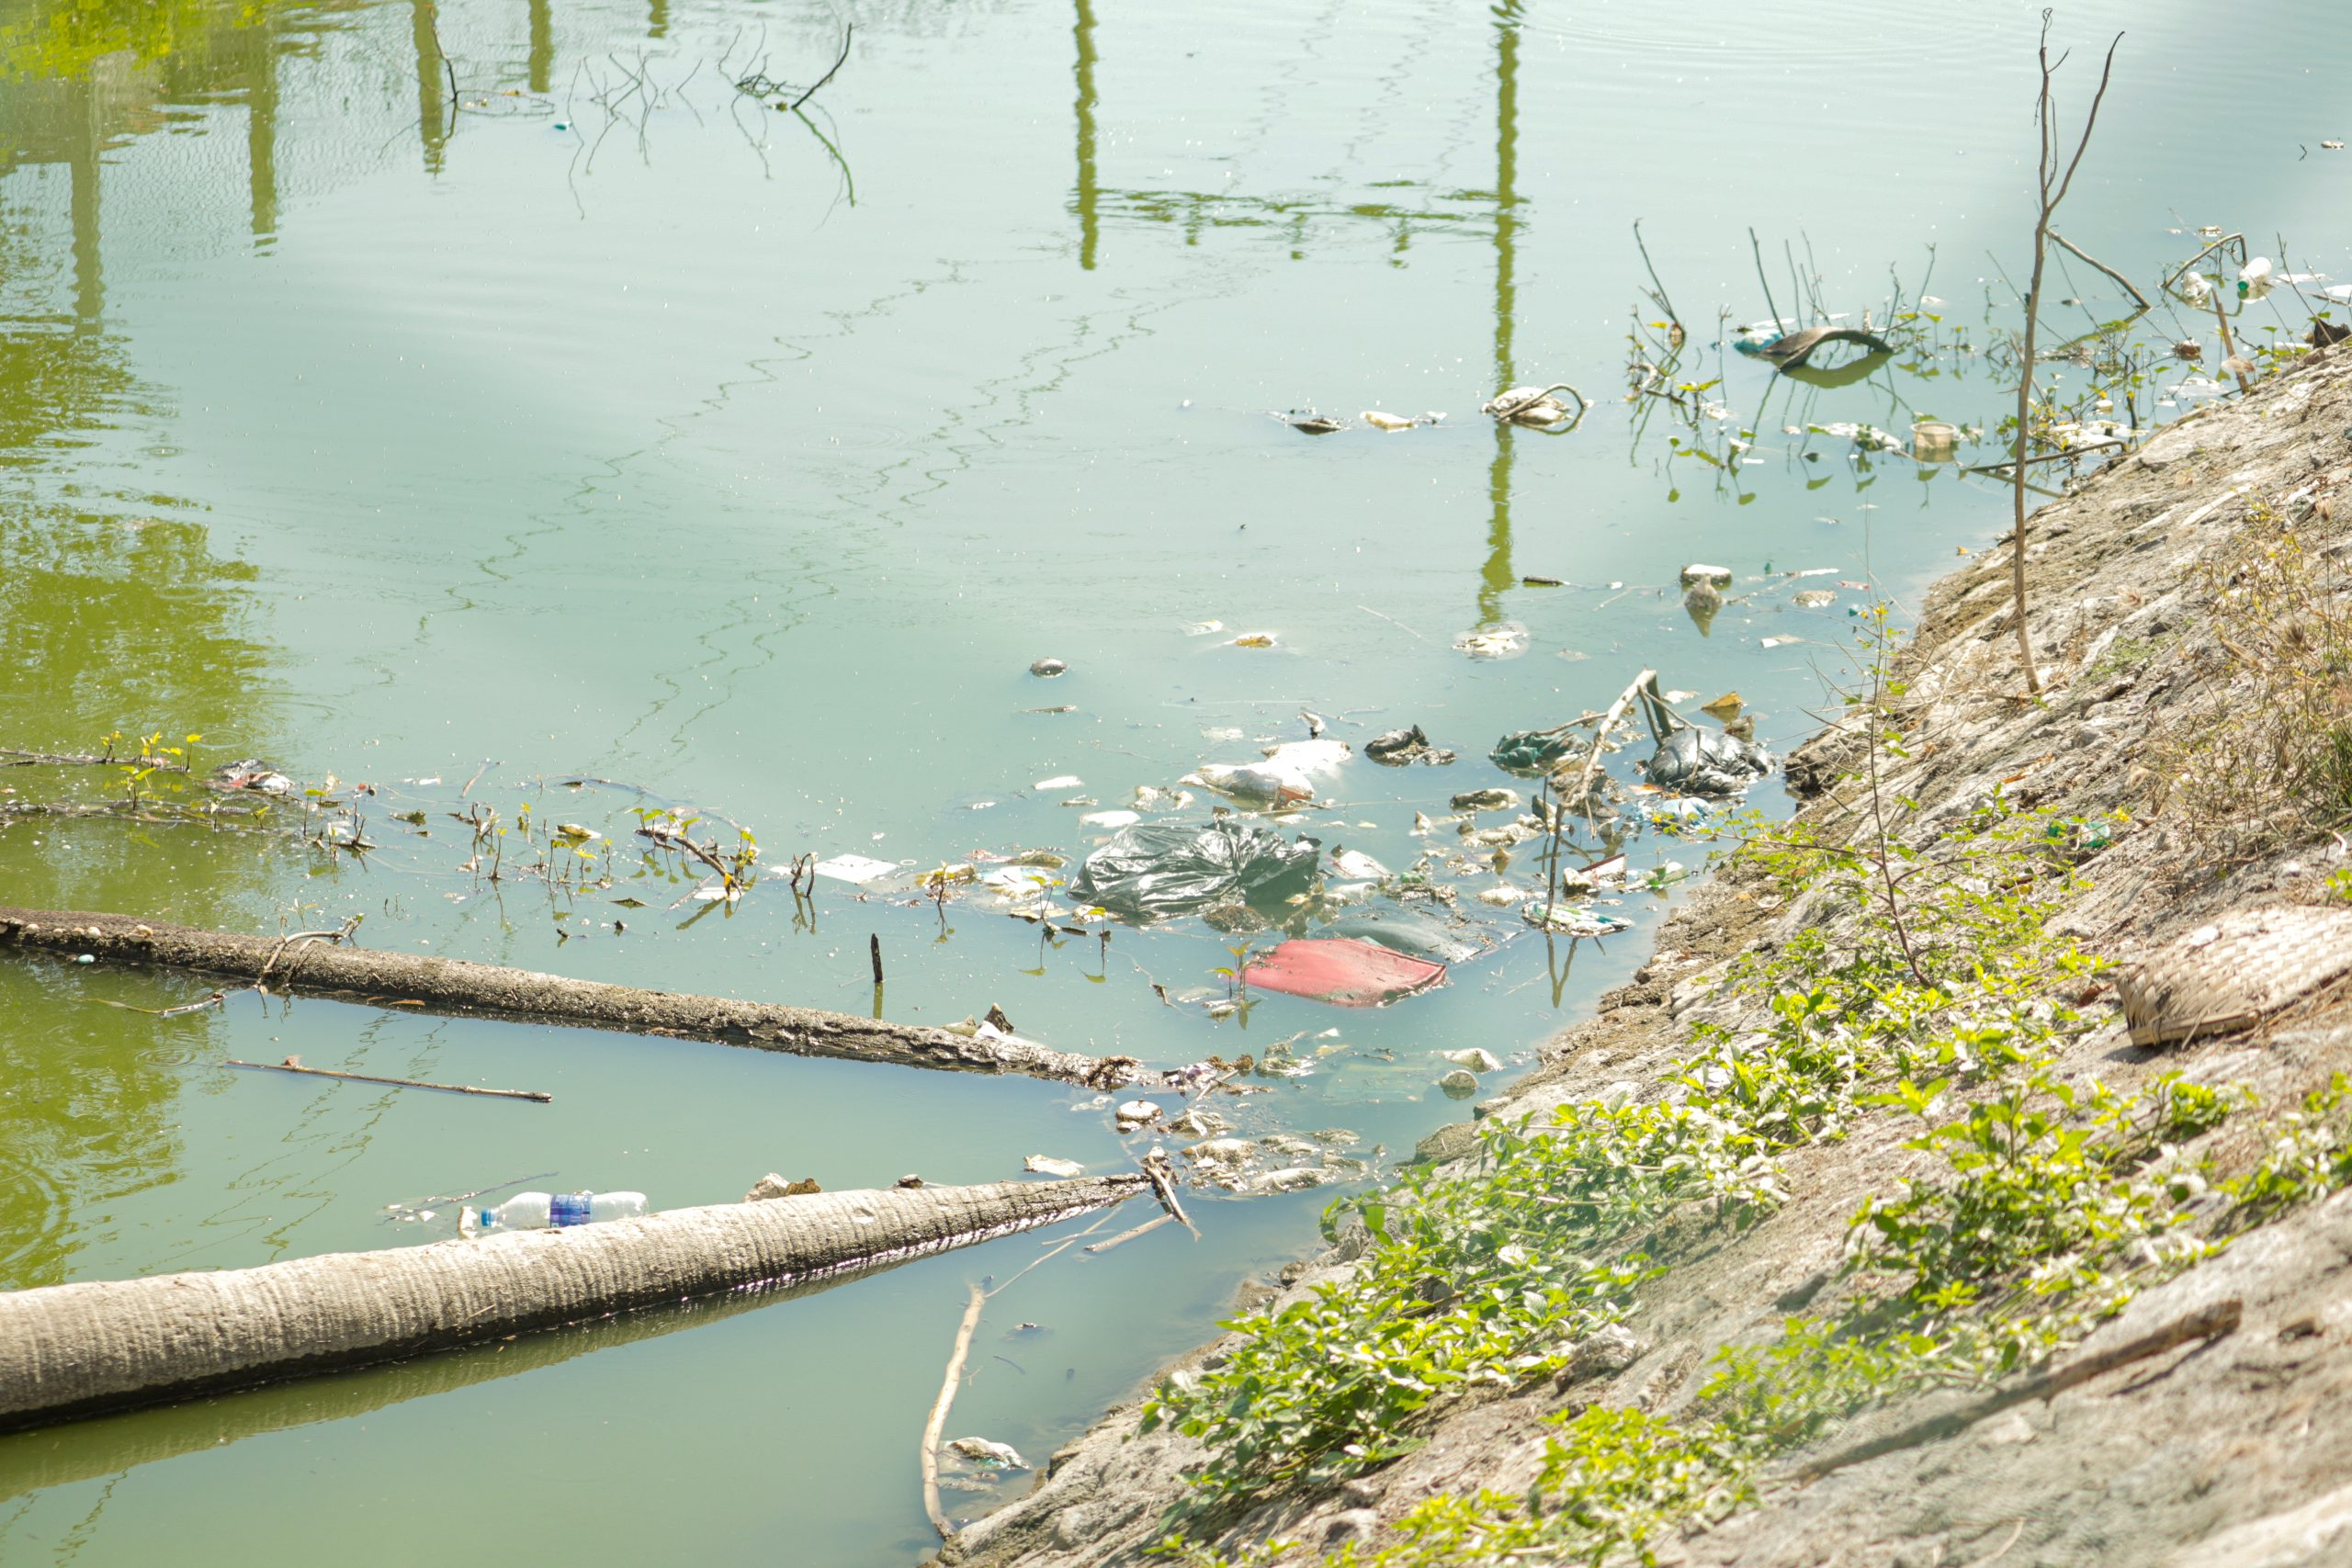 Polluted water resource